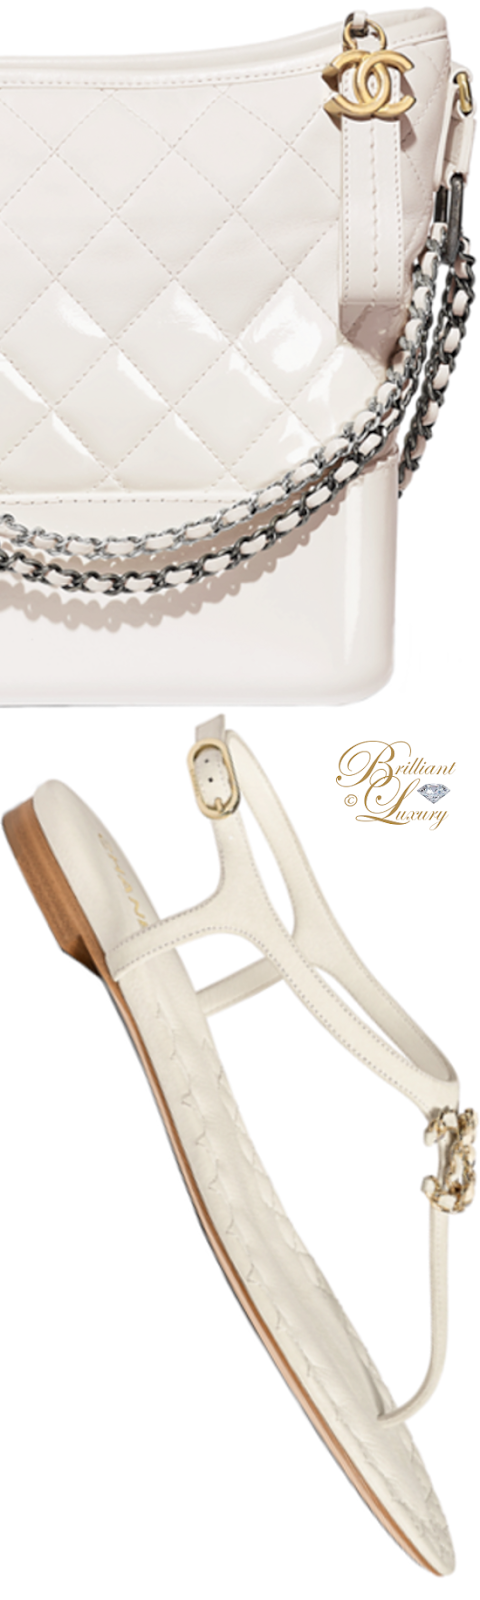 Brilliant Luxury ♦ Chanel white Gabrielle hobo bag and Chanel flat sandals